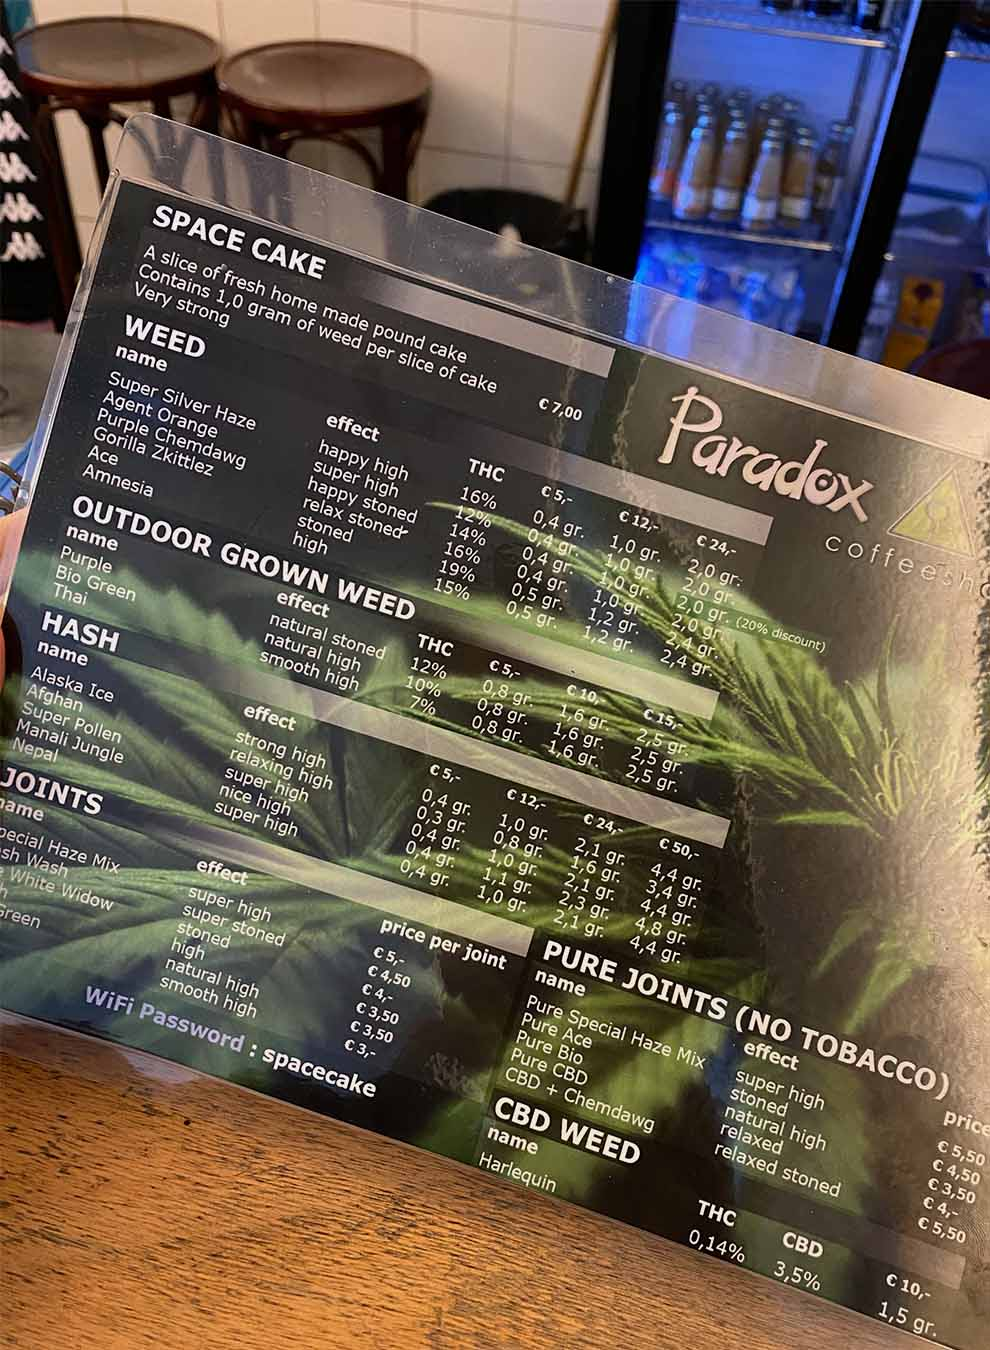 Cannabis menu at the coffeeshop Paradox in Amsterdam